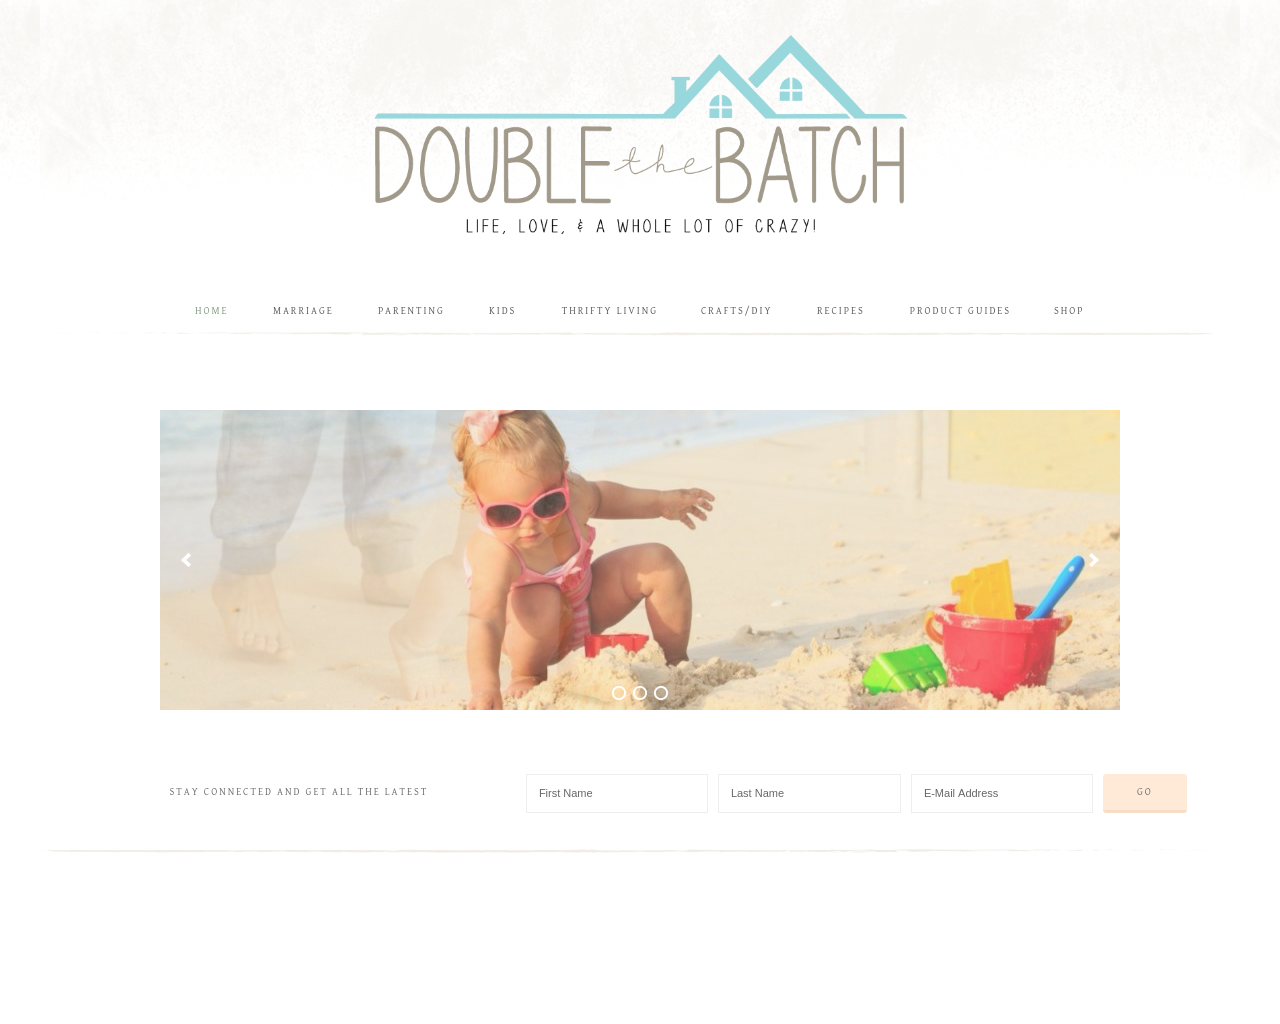 Double-the-Batch-Advertising-Reviews-Pricing